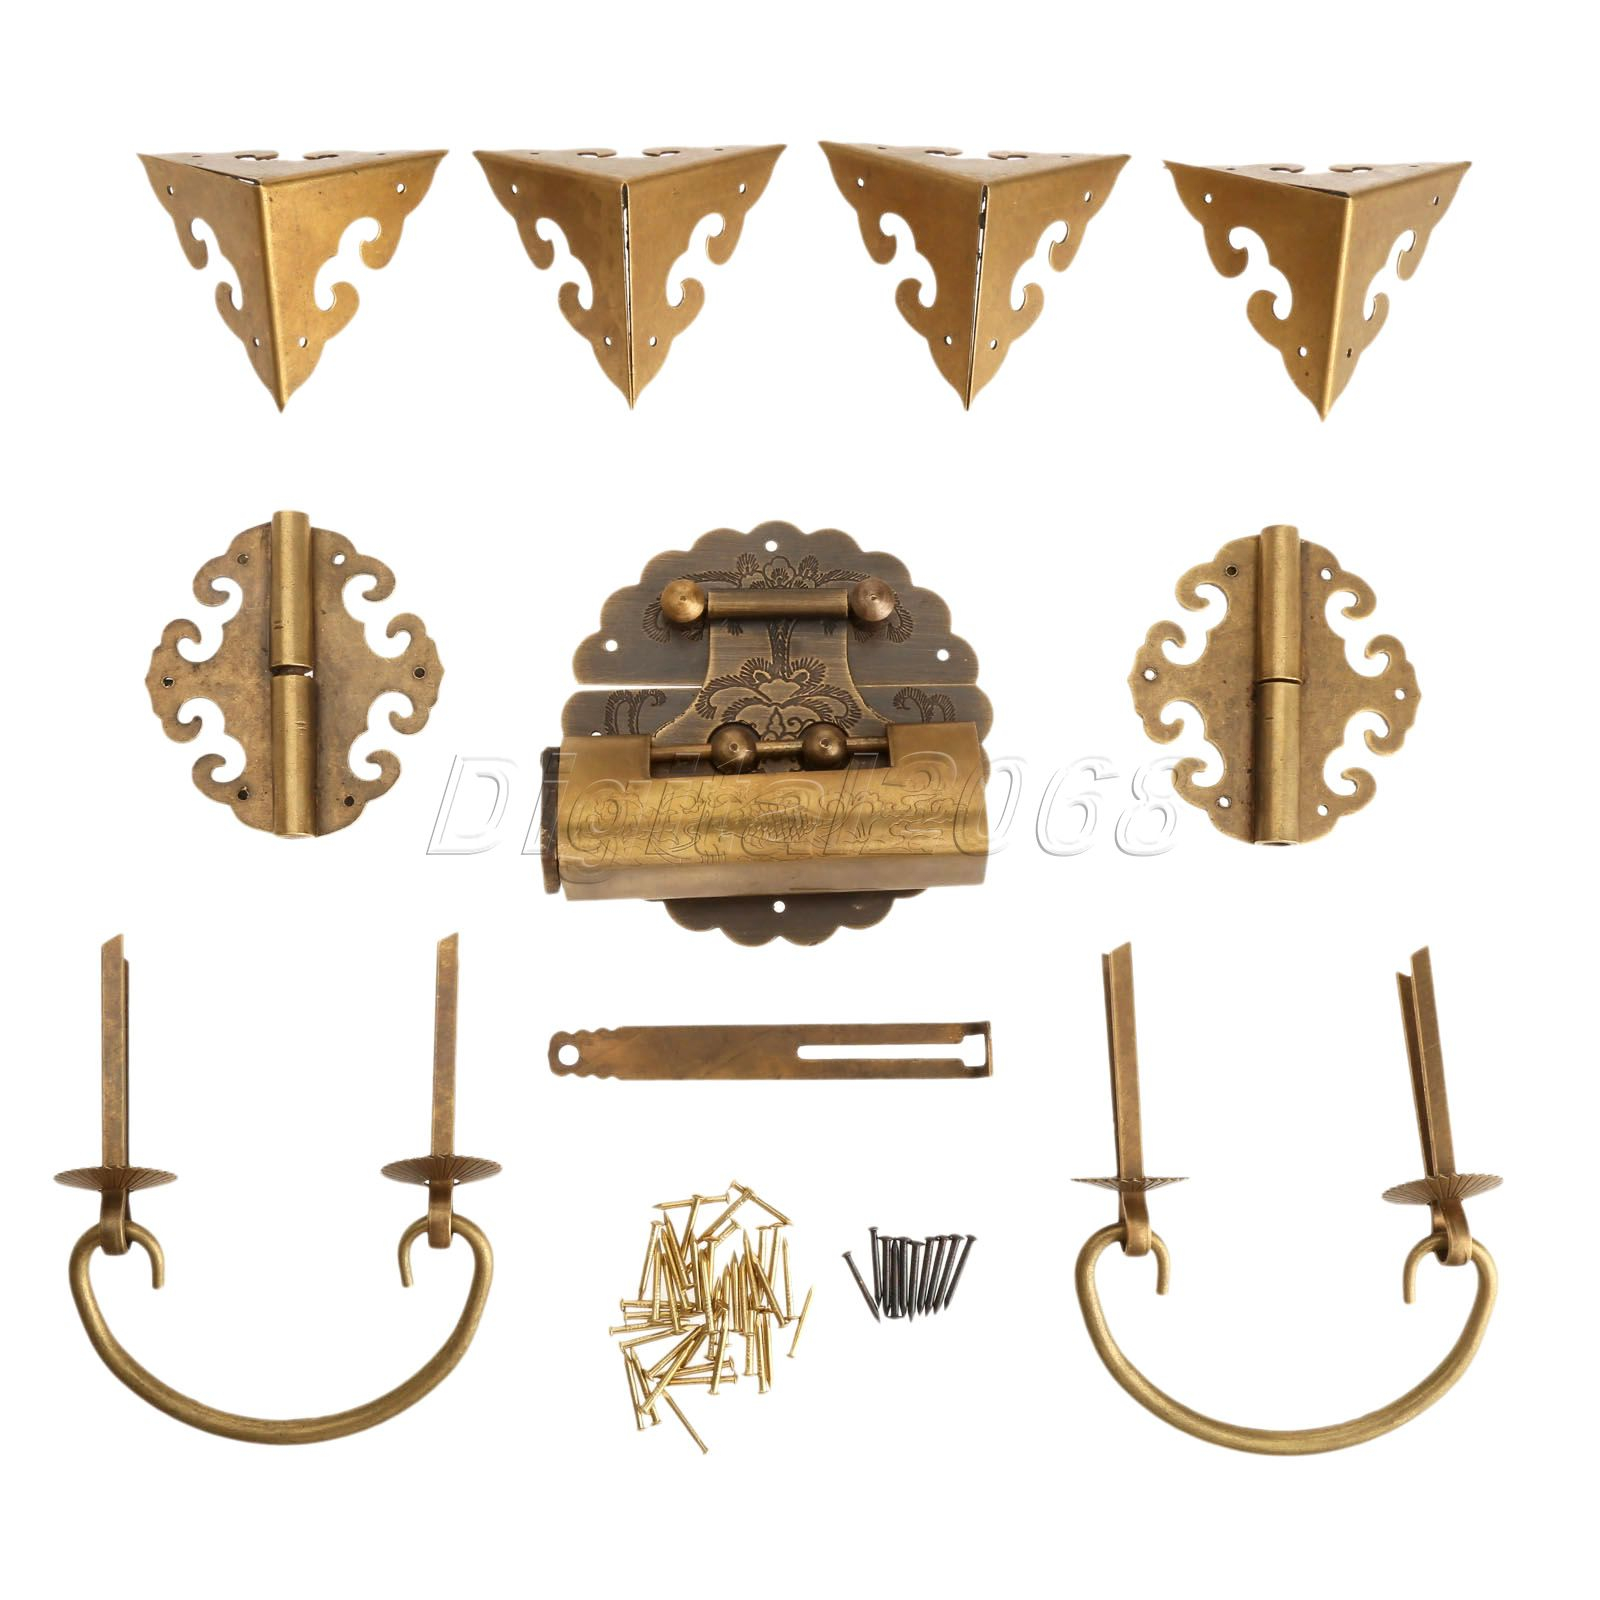 Hot Good Quality 9pcs/set Brass Chinese Furniture Hardware Chest Hinge Trunk Latch Box Handle Corner Plate with Nails(China (Mainland))